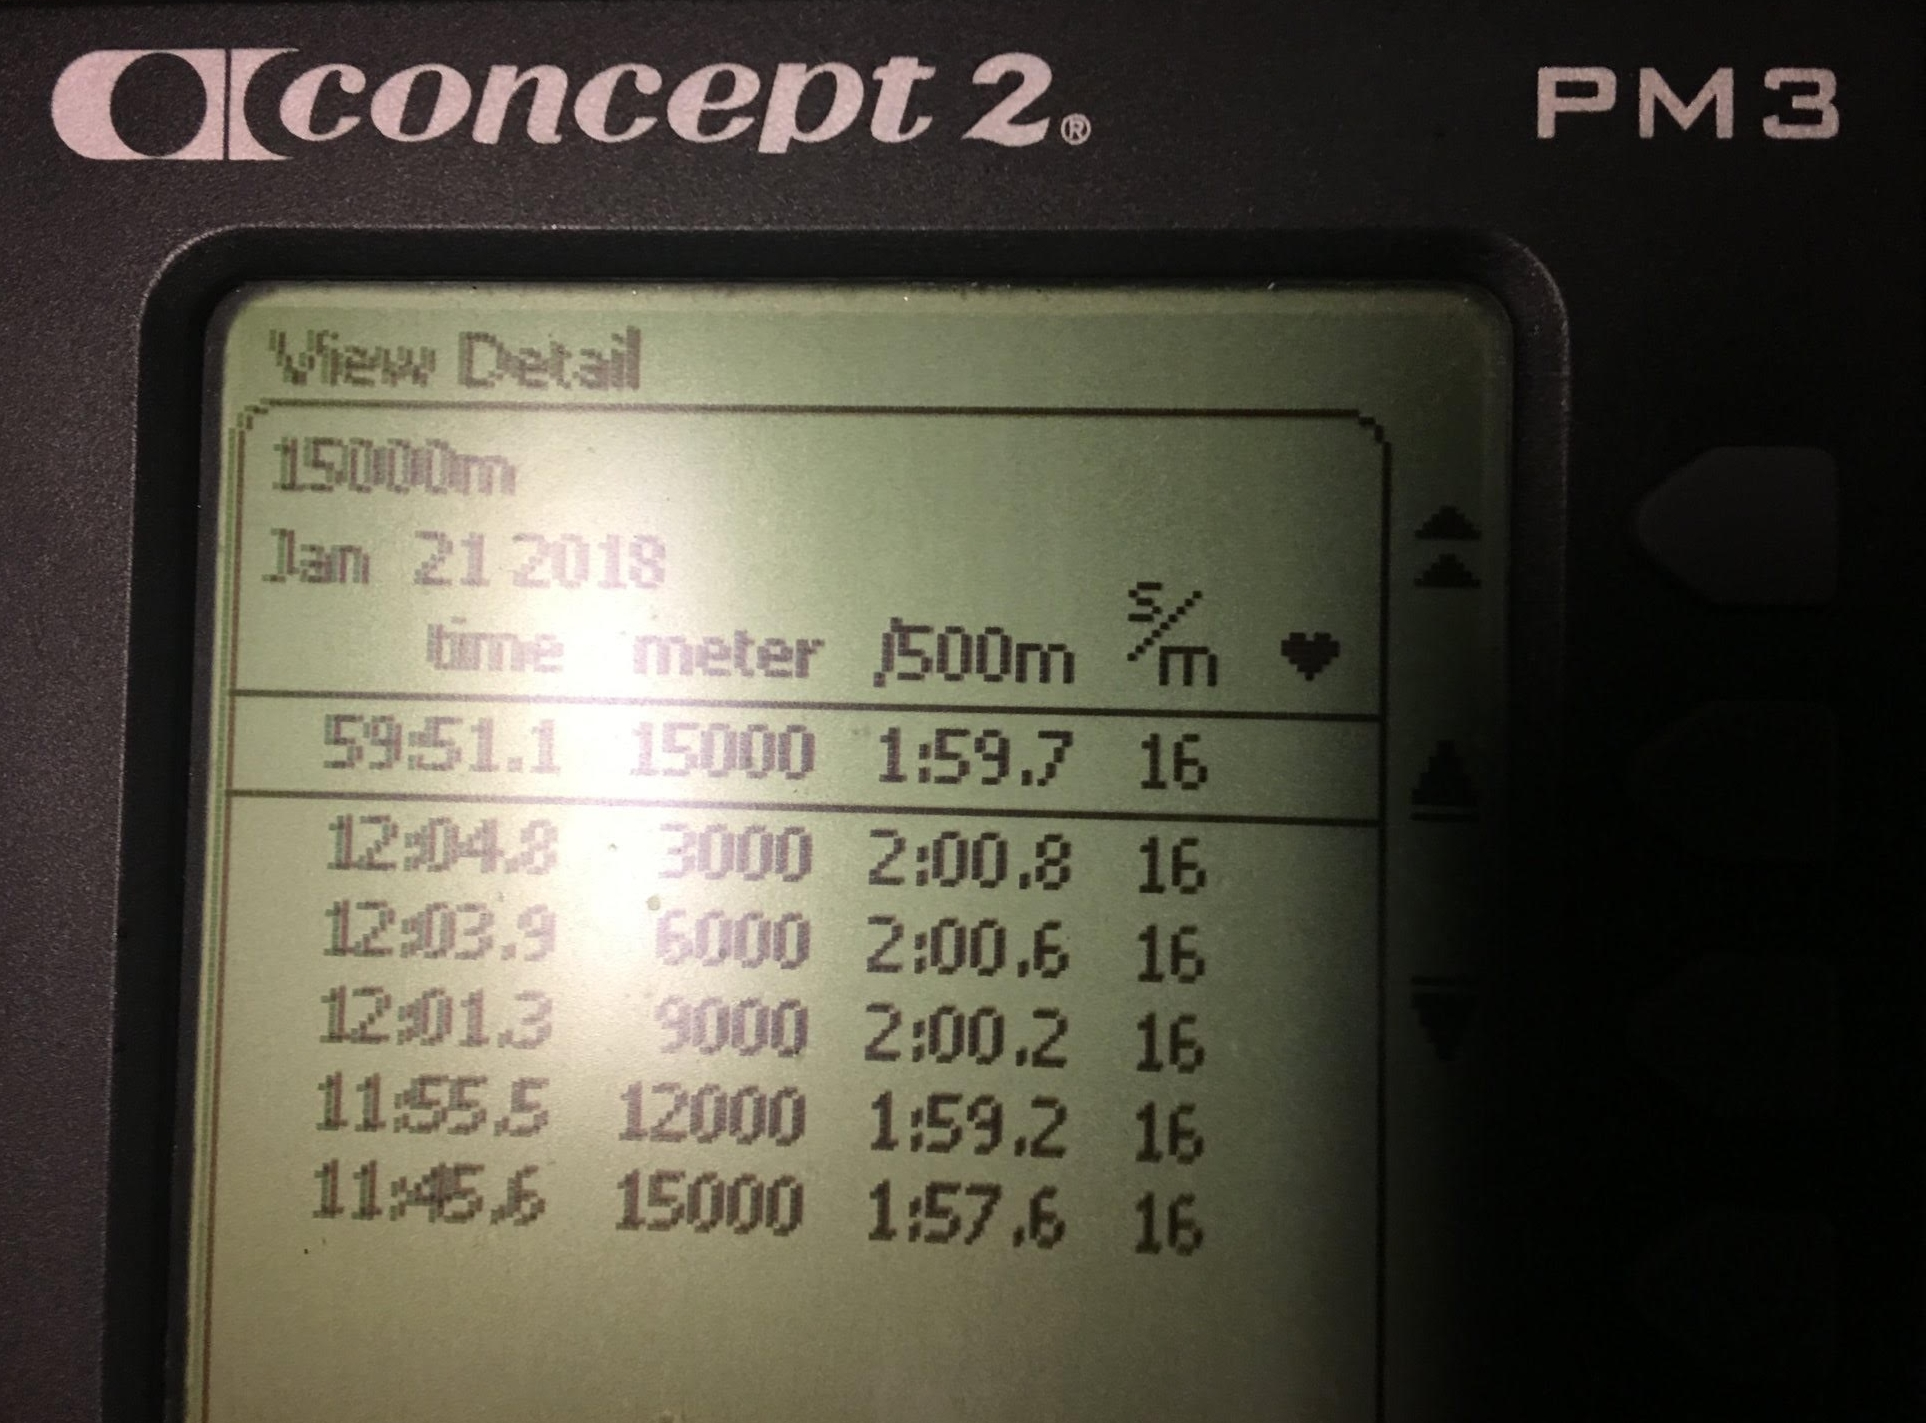 Example workout summary from a erg